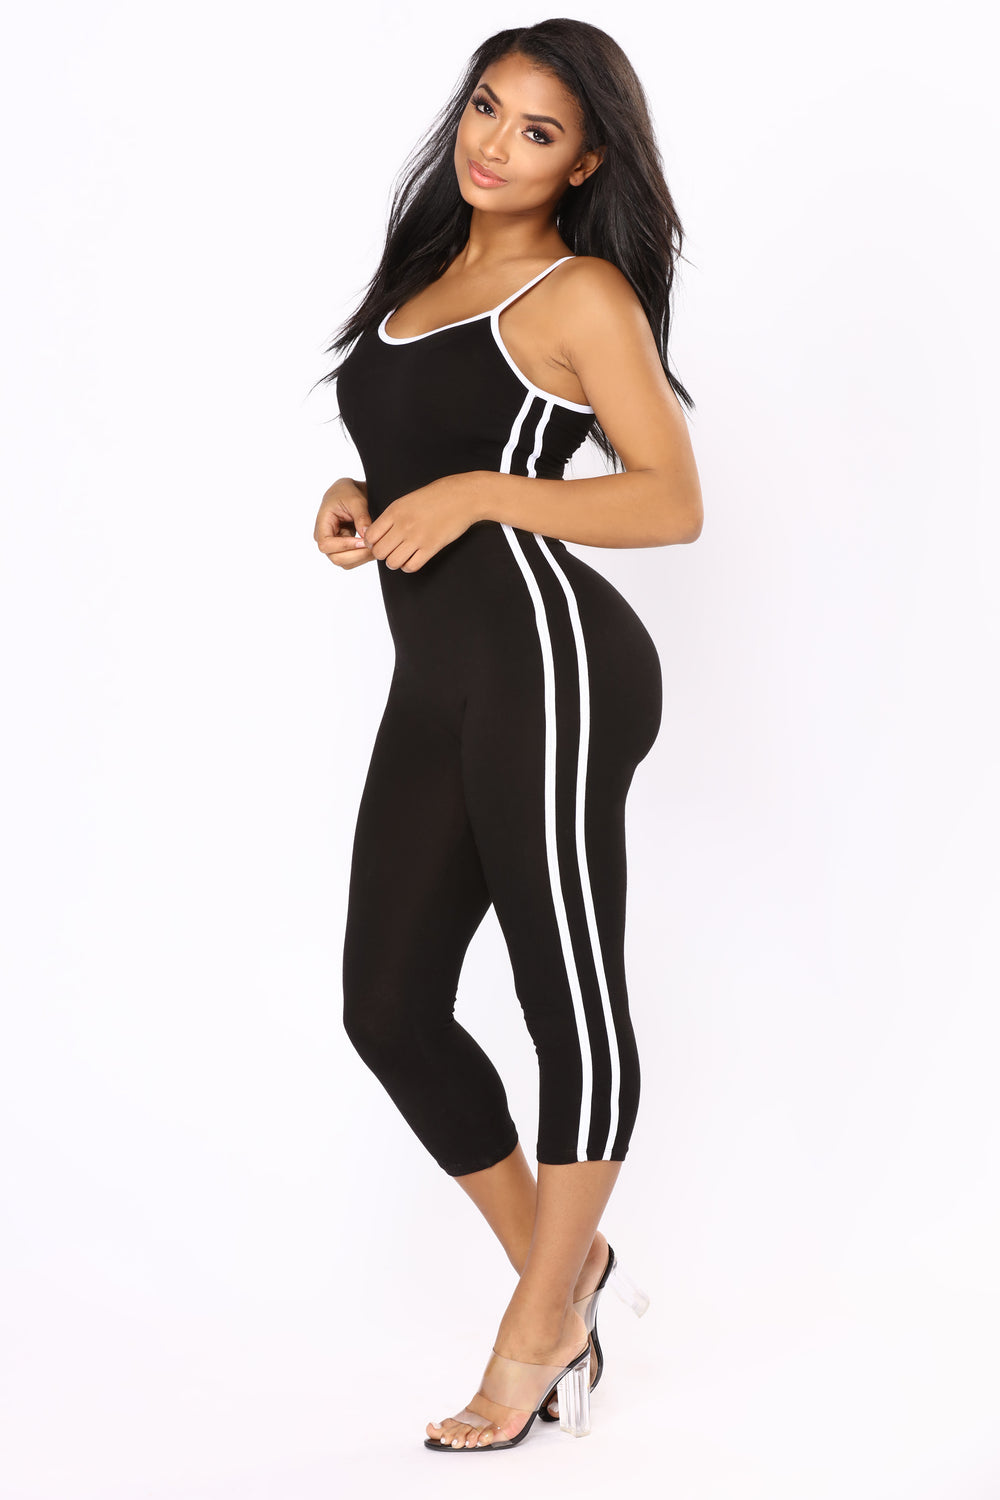 Hyped For The Weekend Jumpsuit - Black